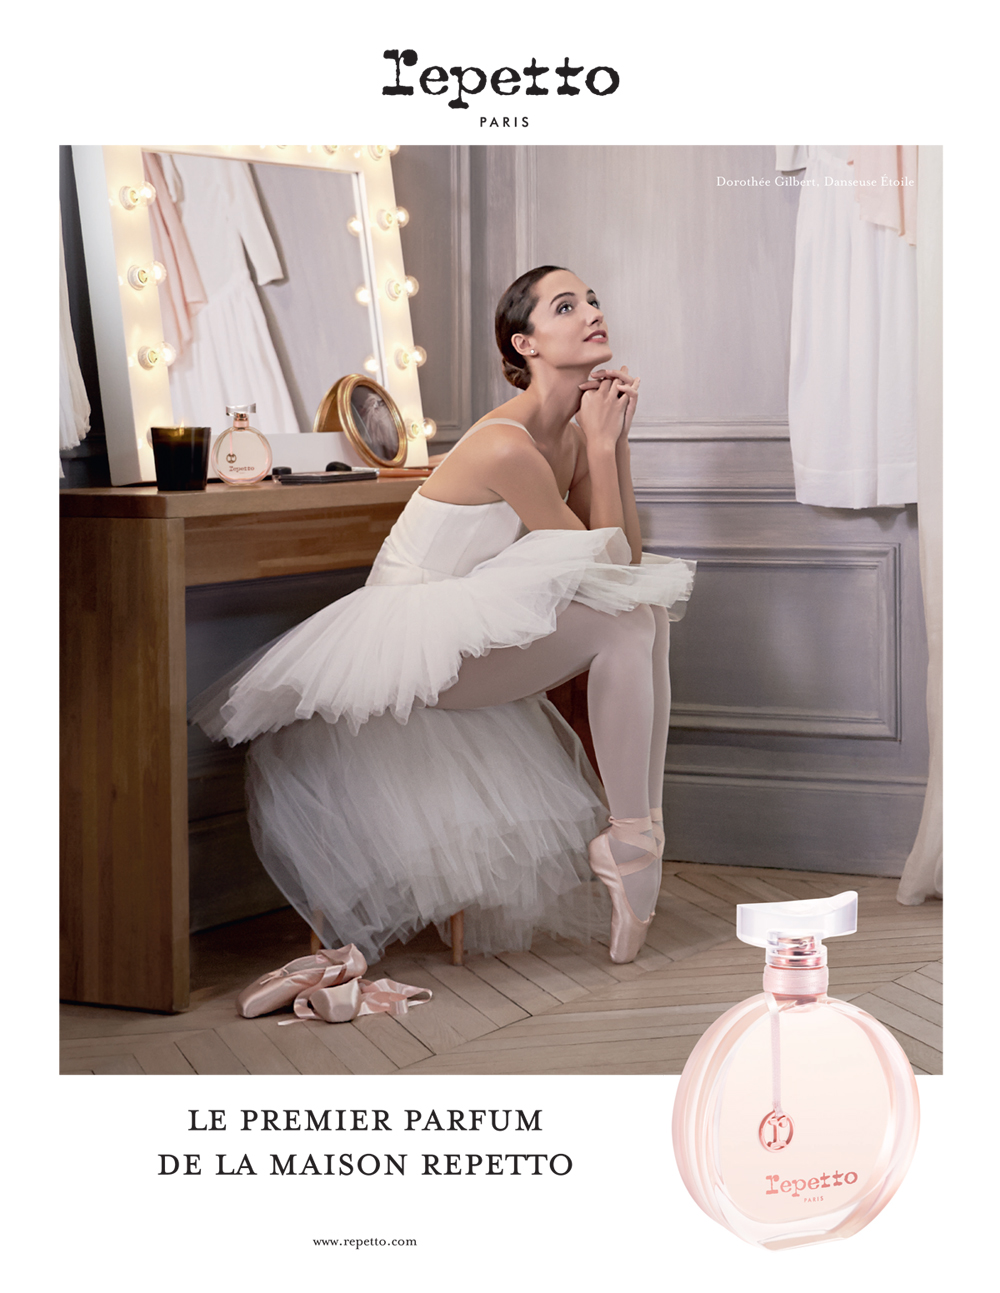 Le Premier Parfum Repetto, Dorothée Gilbert by James Bort